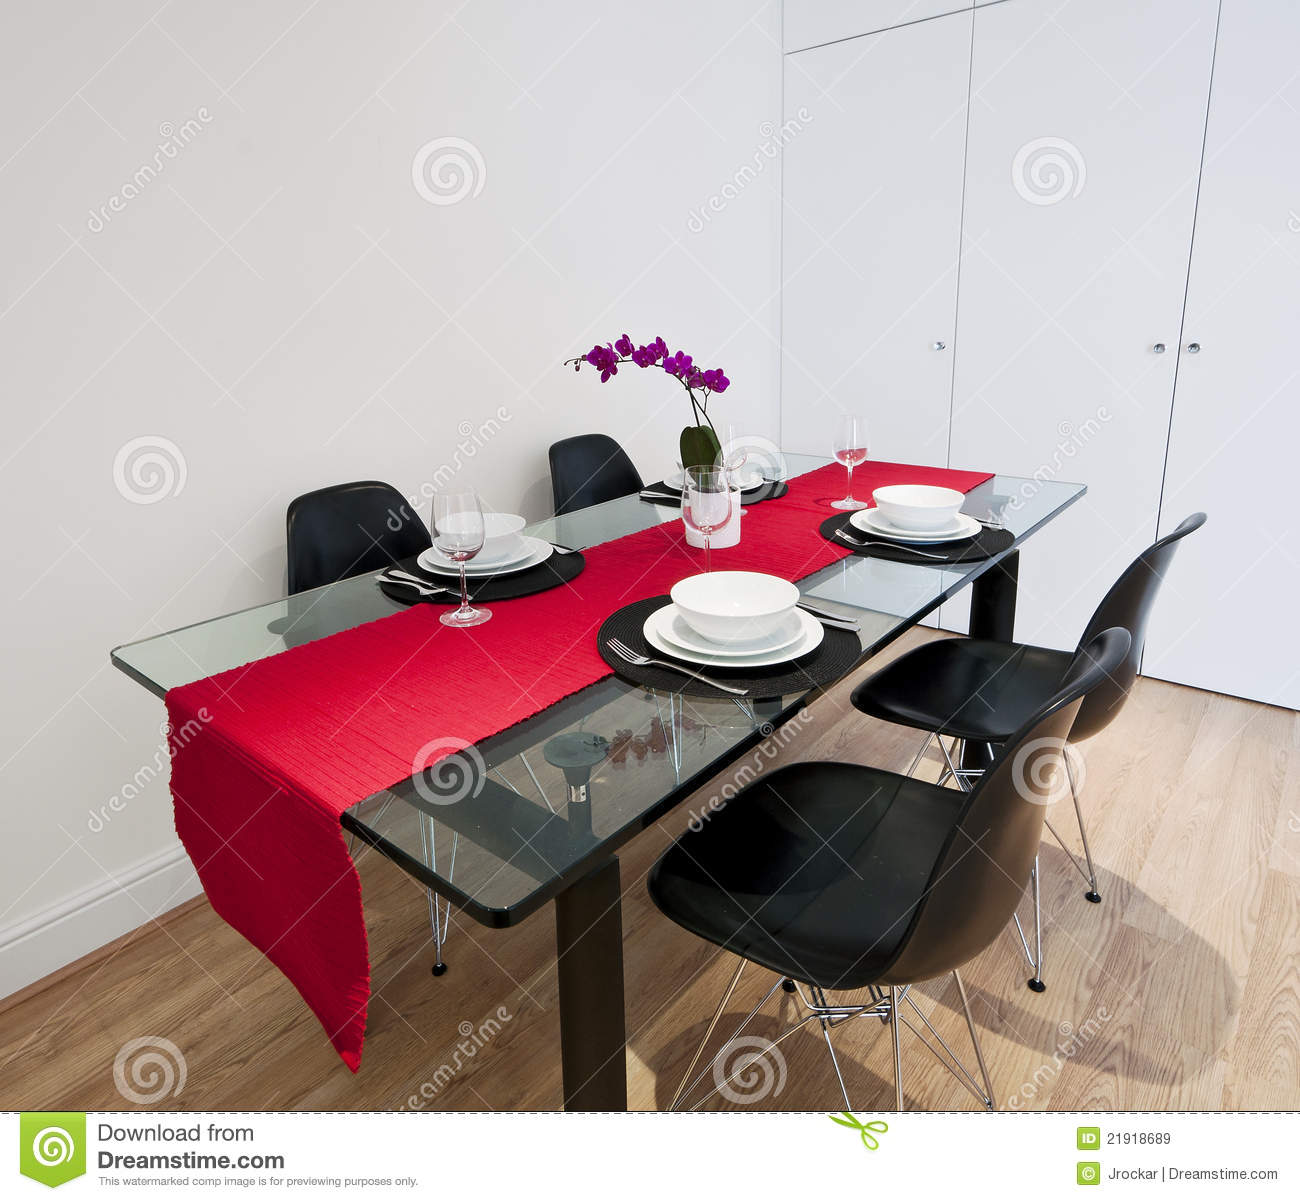 Dining Table With Red Cloth Stock Image Image 21918689